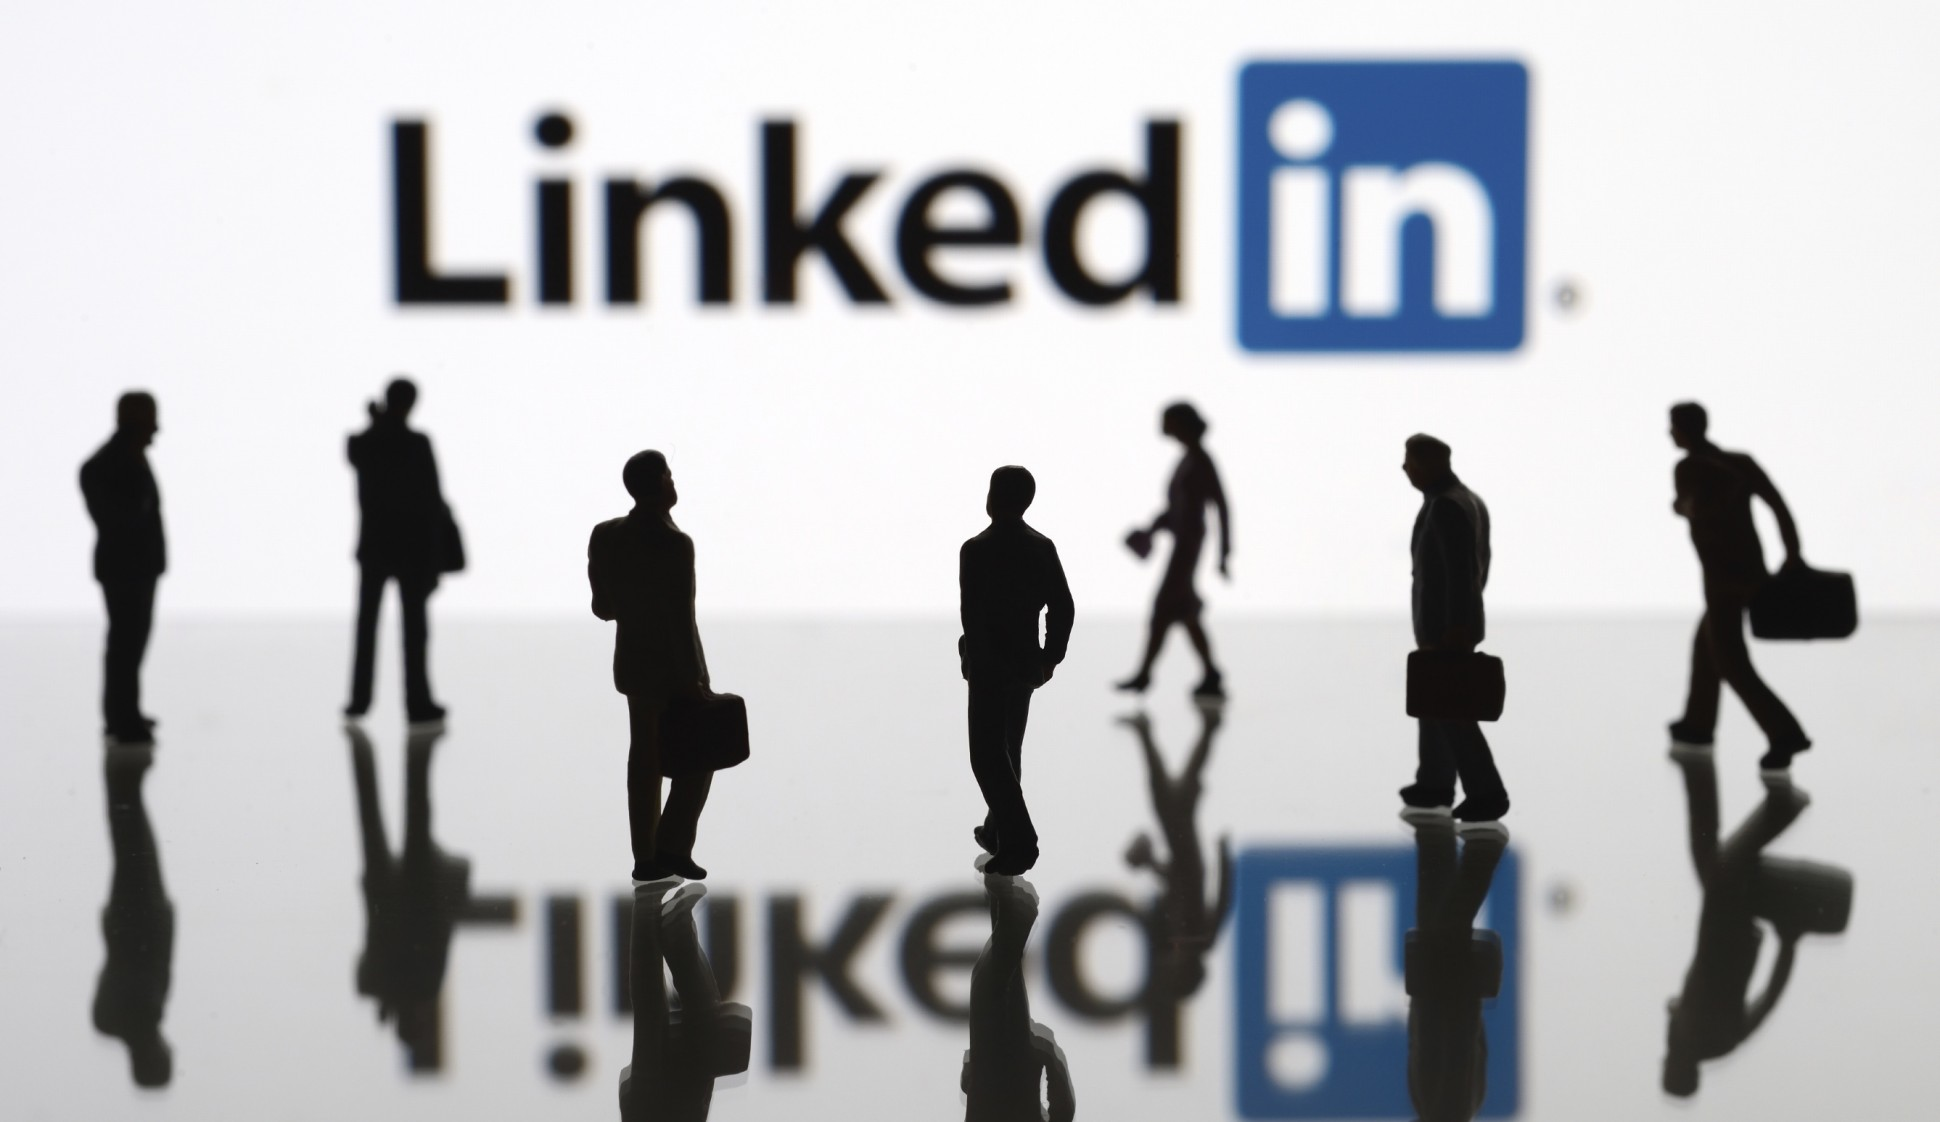 Promote Your Business Website Or Product To My 8,307 Linkedin connections